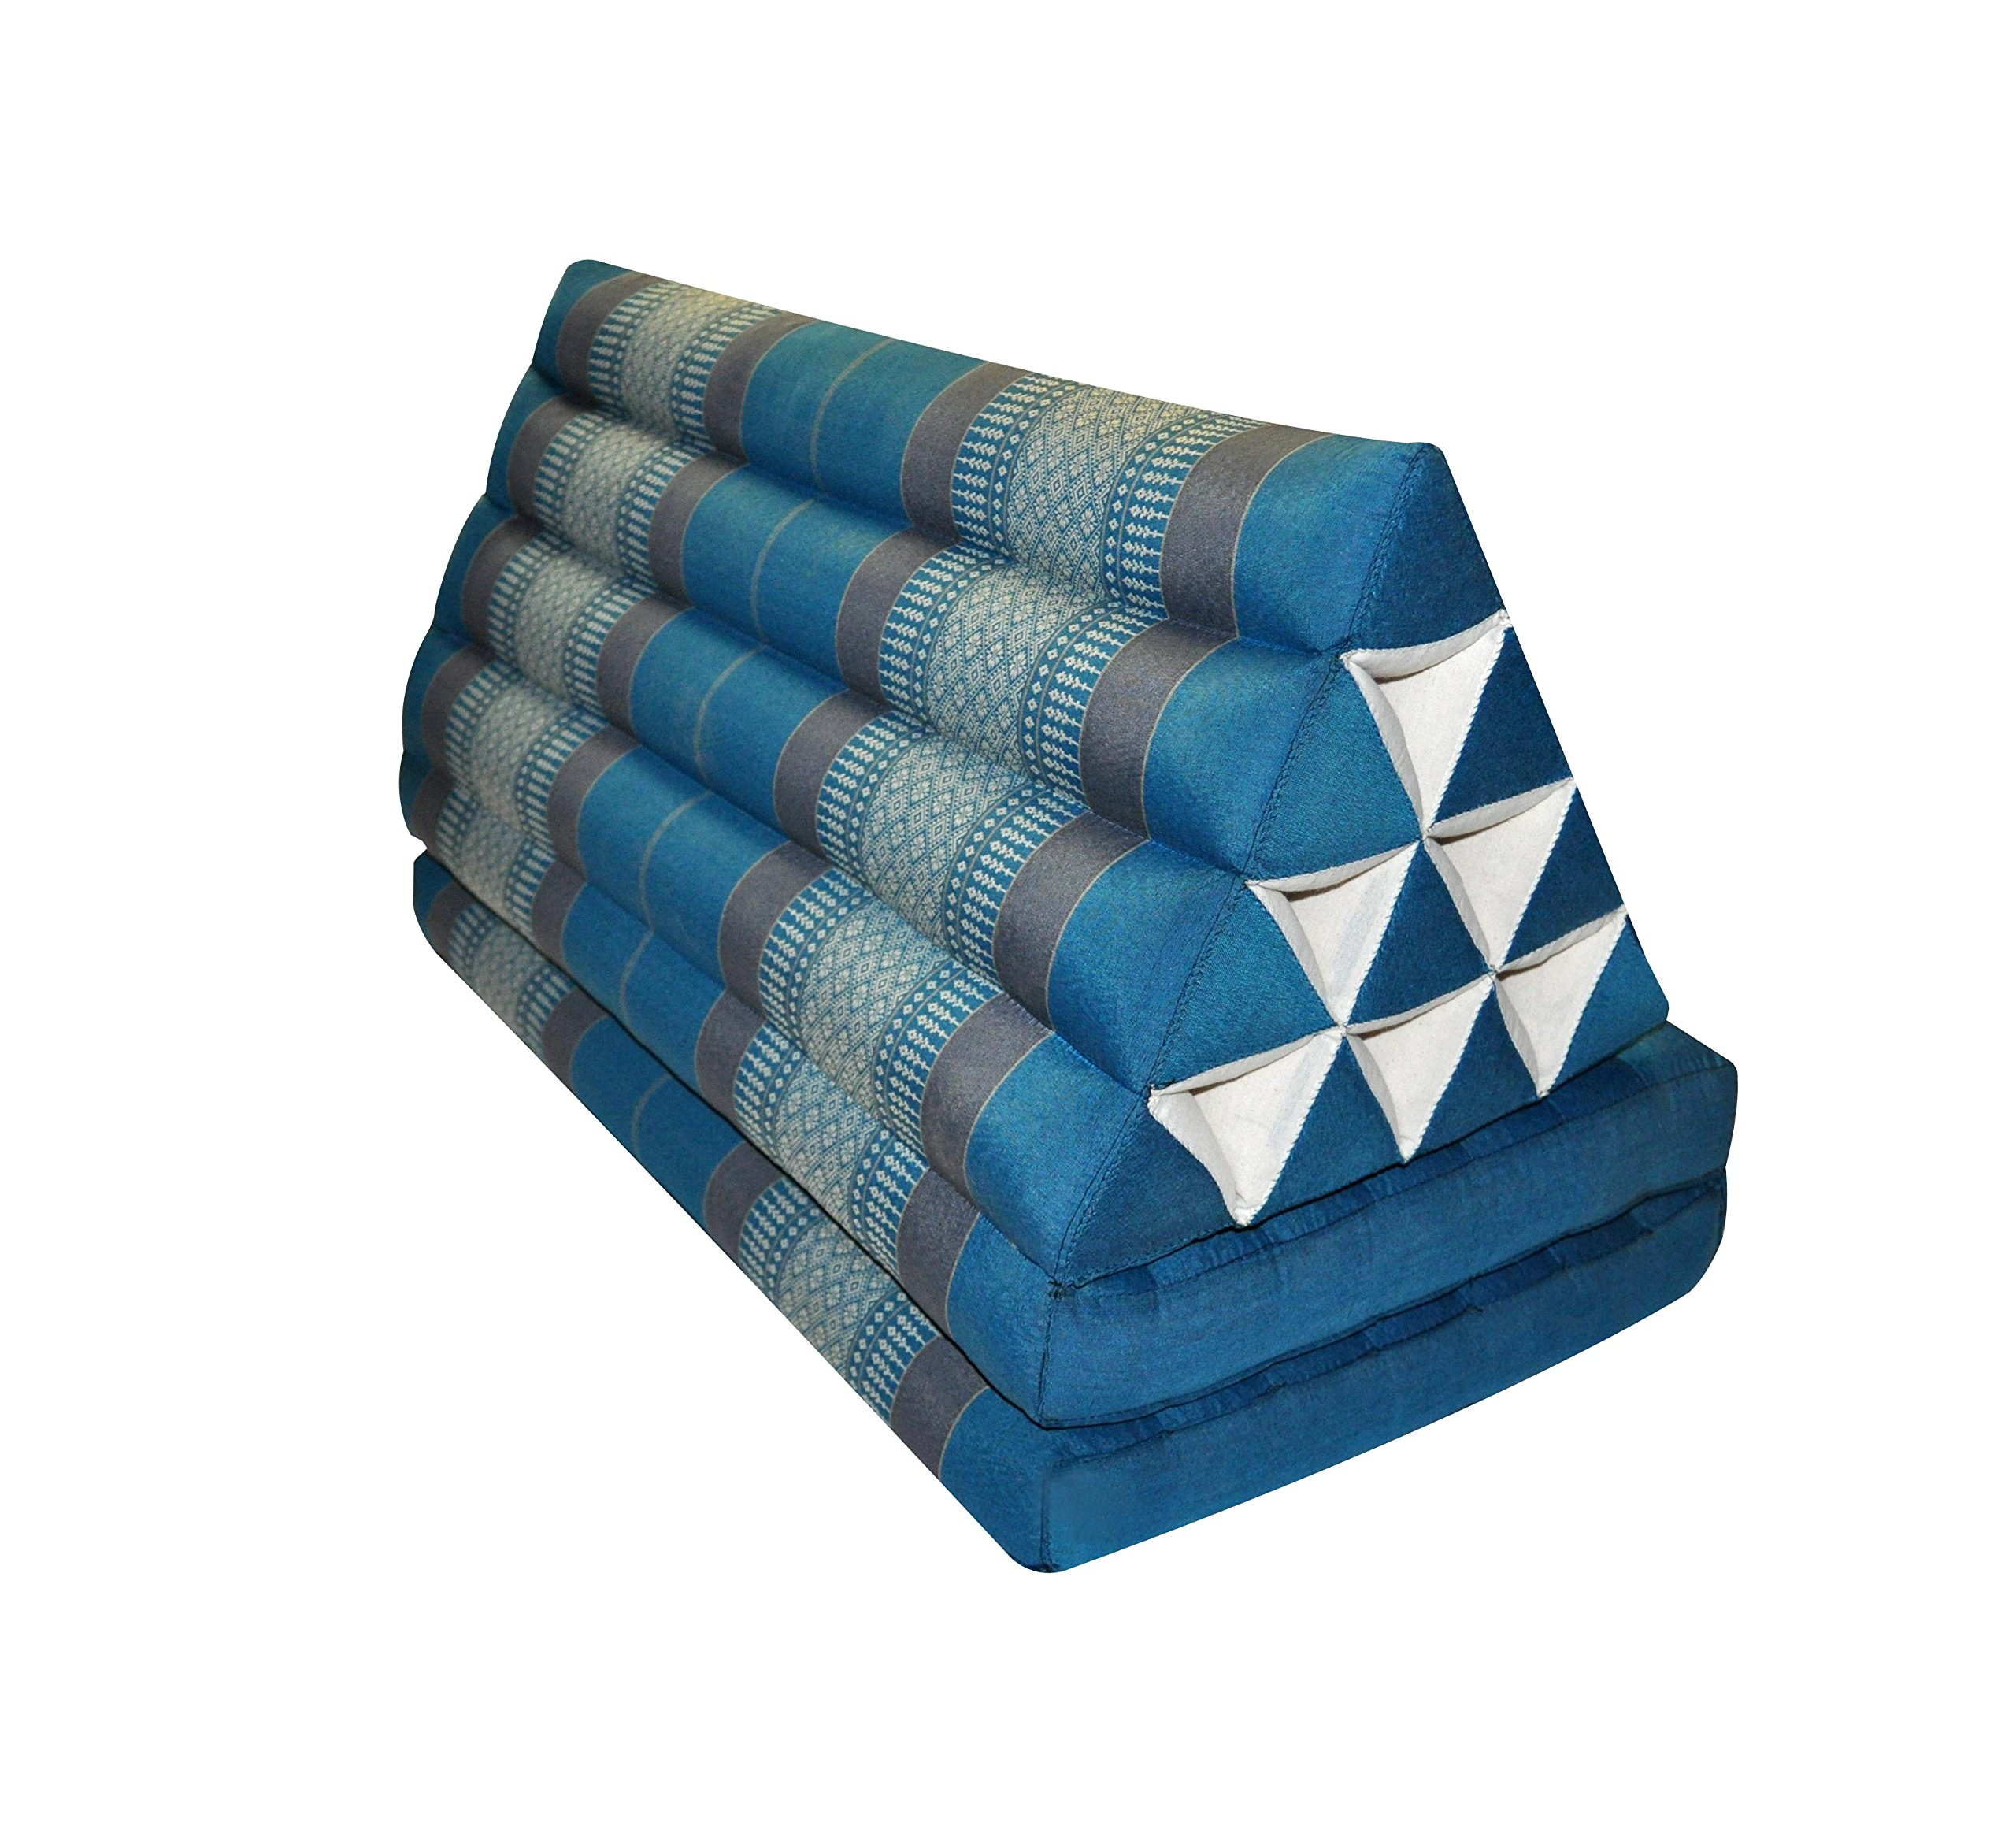 Thai triangle cushion XXL, with 2 folding seats, blue/grey, sofa, relaxation, beach, pool, meditation, yoga, made in Thailand. (82617) by Wilai GmbH